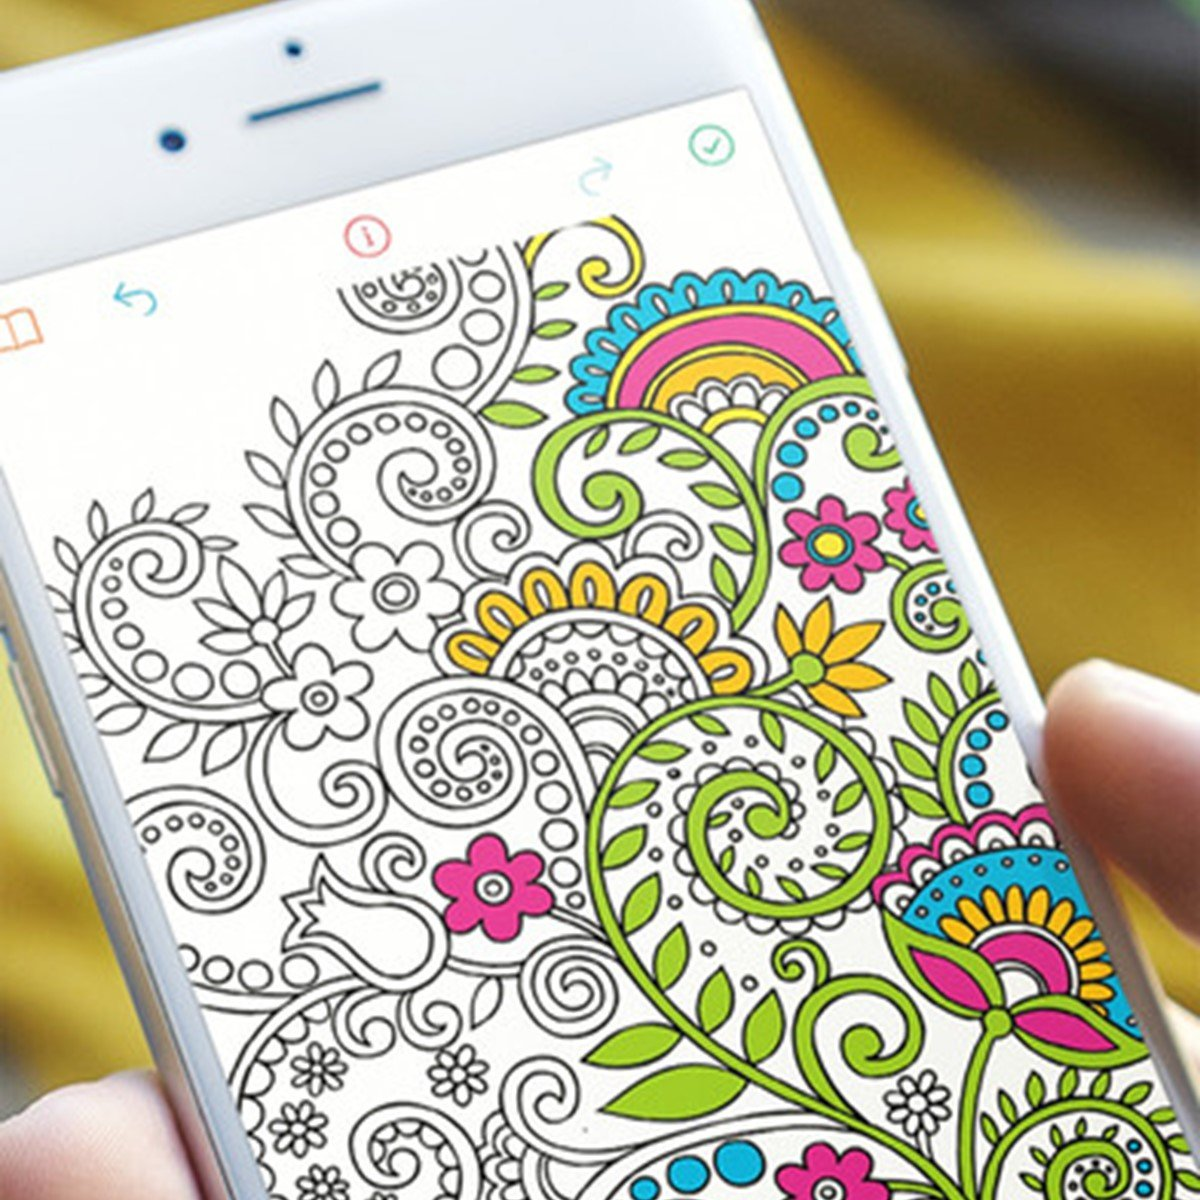 Coloring games like recolor - Recolor Coloring Book For Adults Alternatives And Similar Apps Alternativeto Net